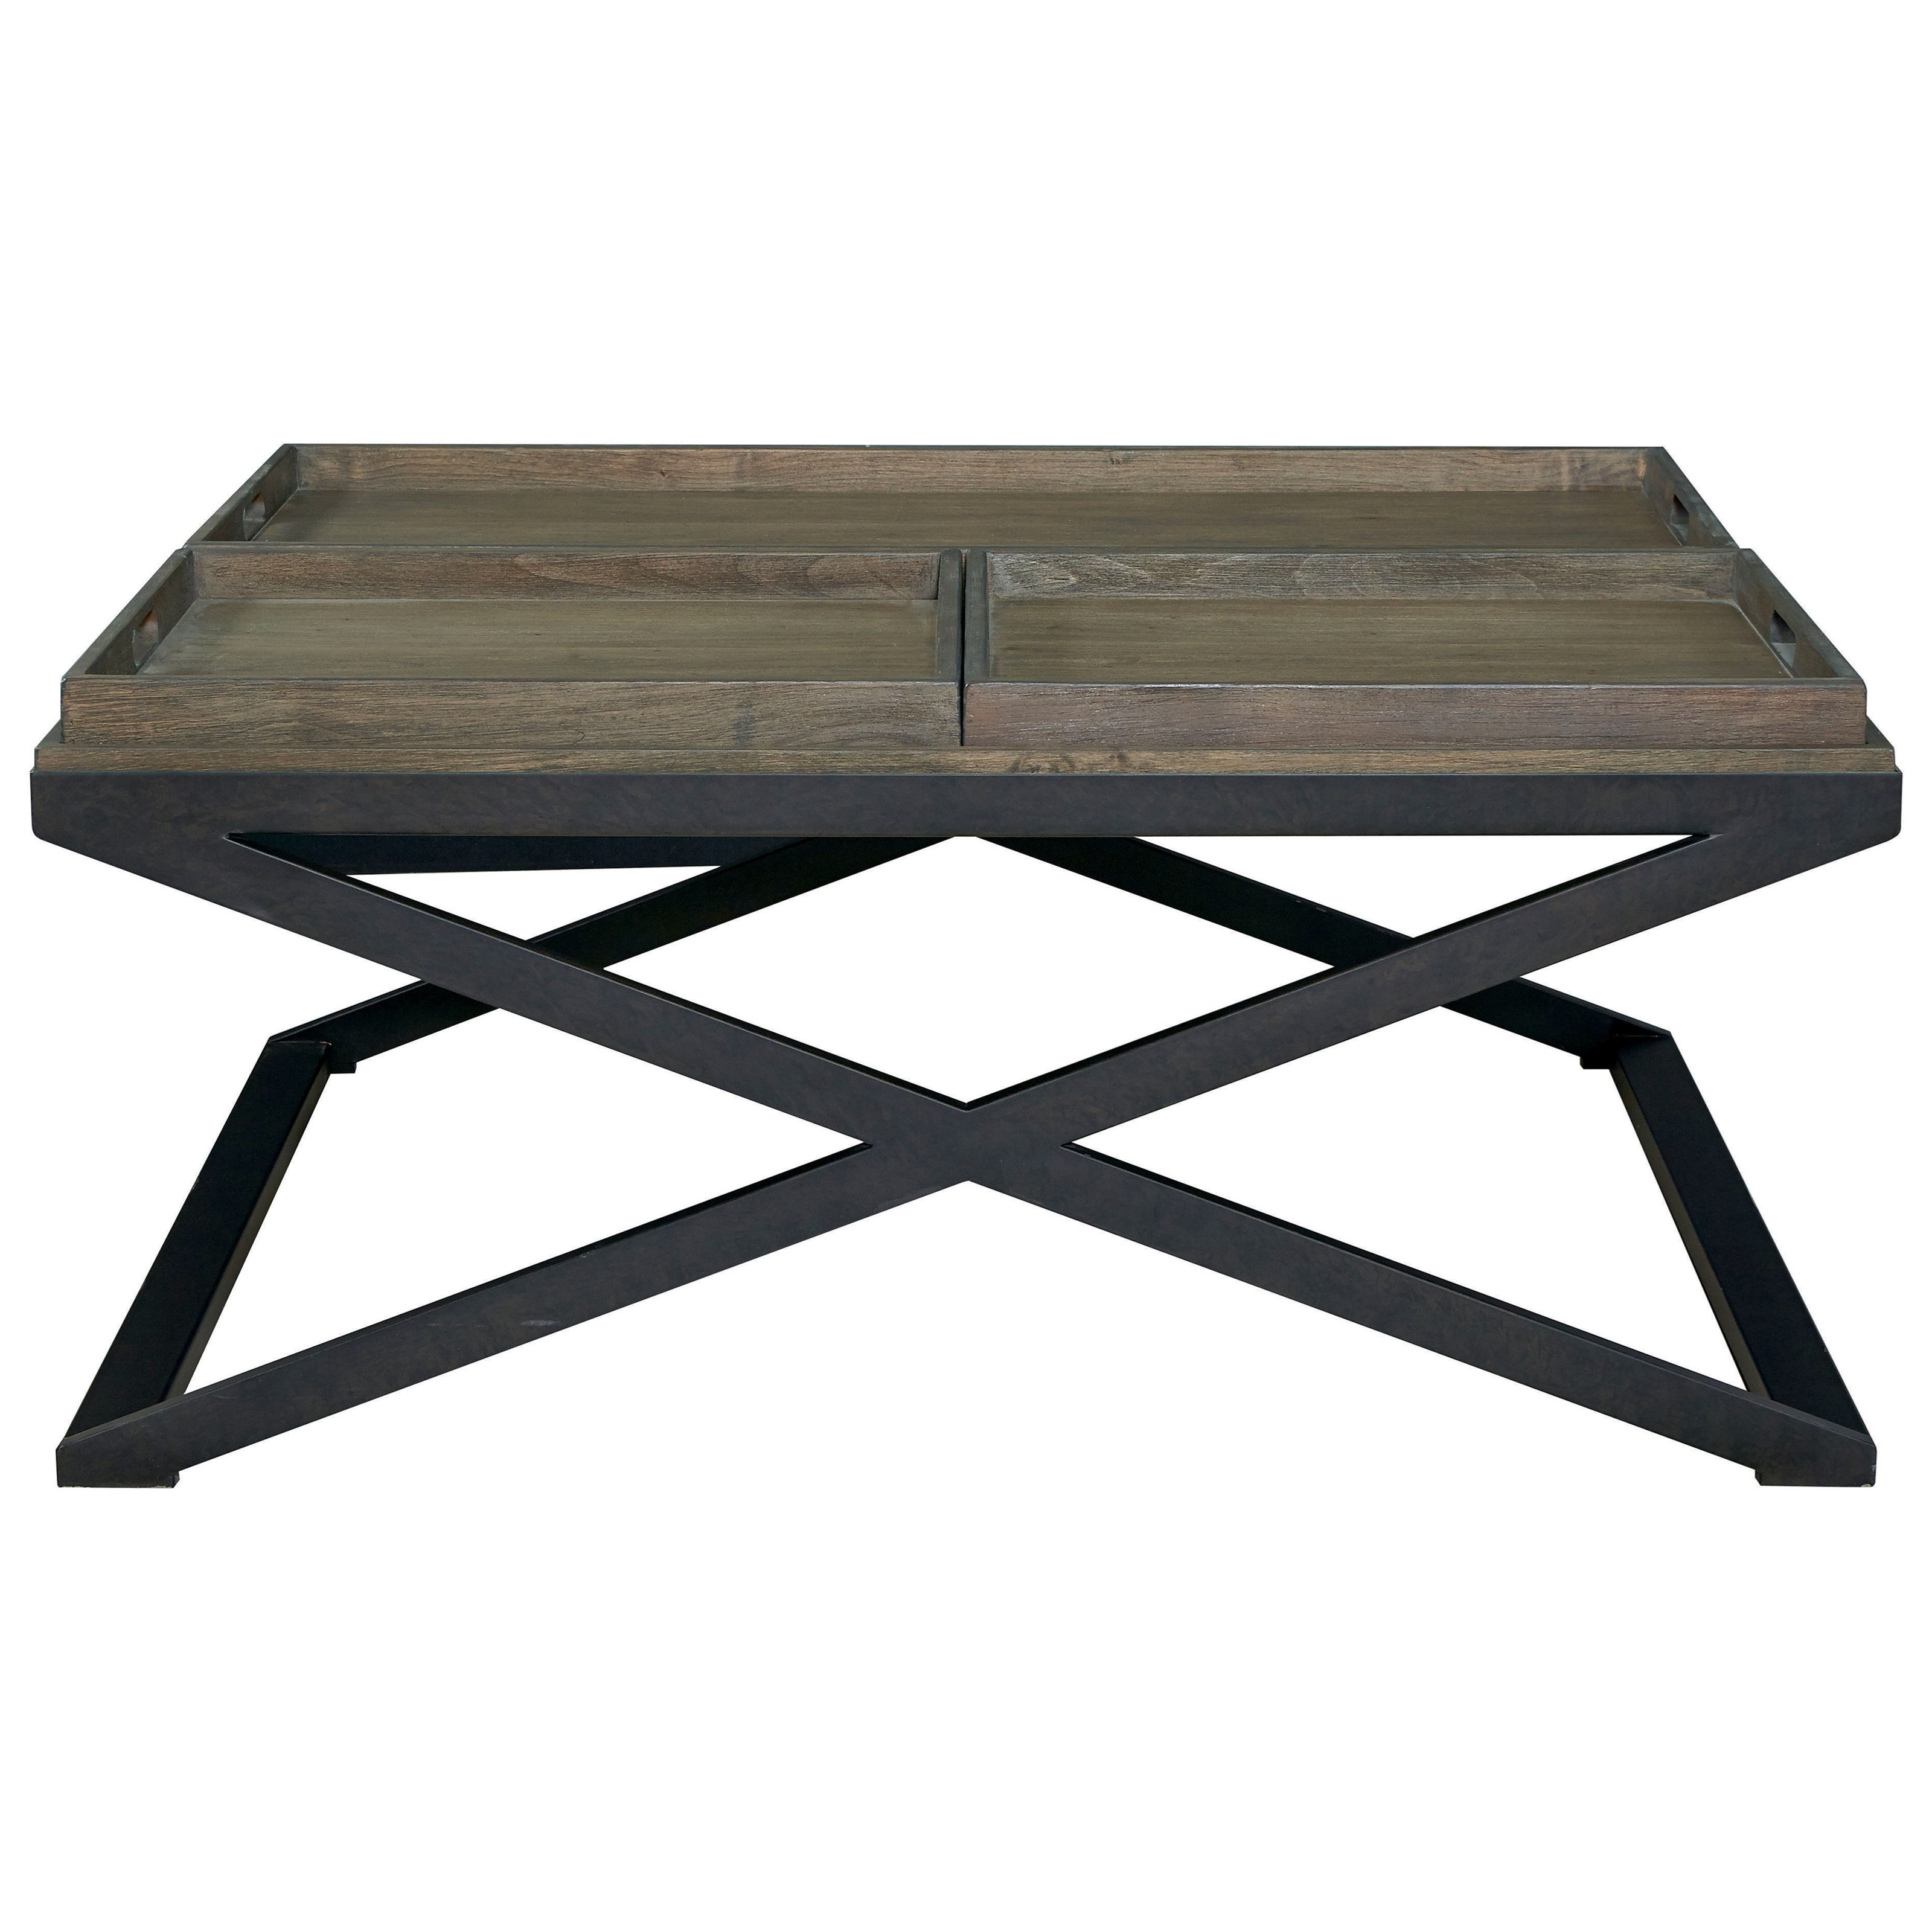 Artisanal Tray Cocktail Table by Bassett at Fisher Home Furnishings